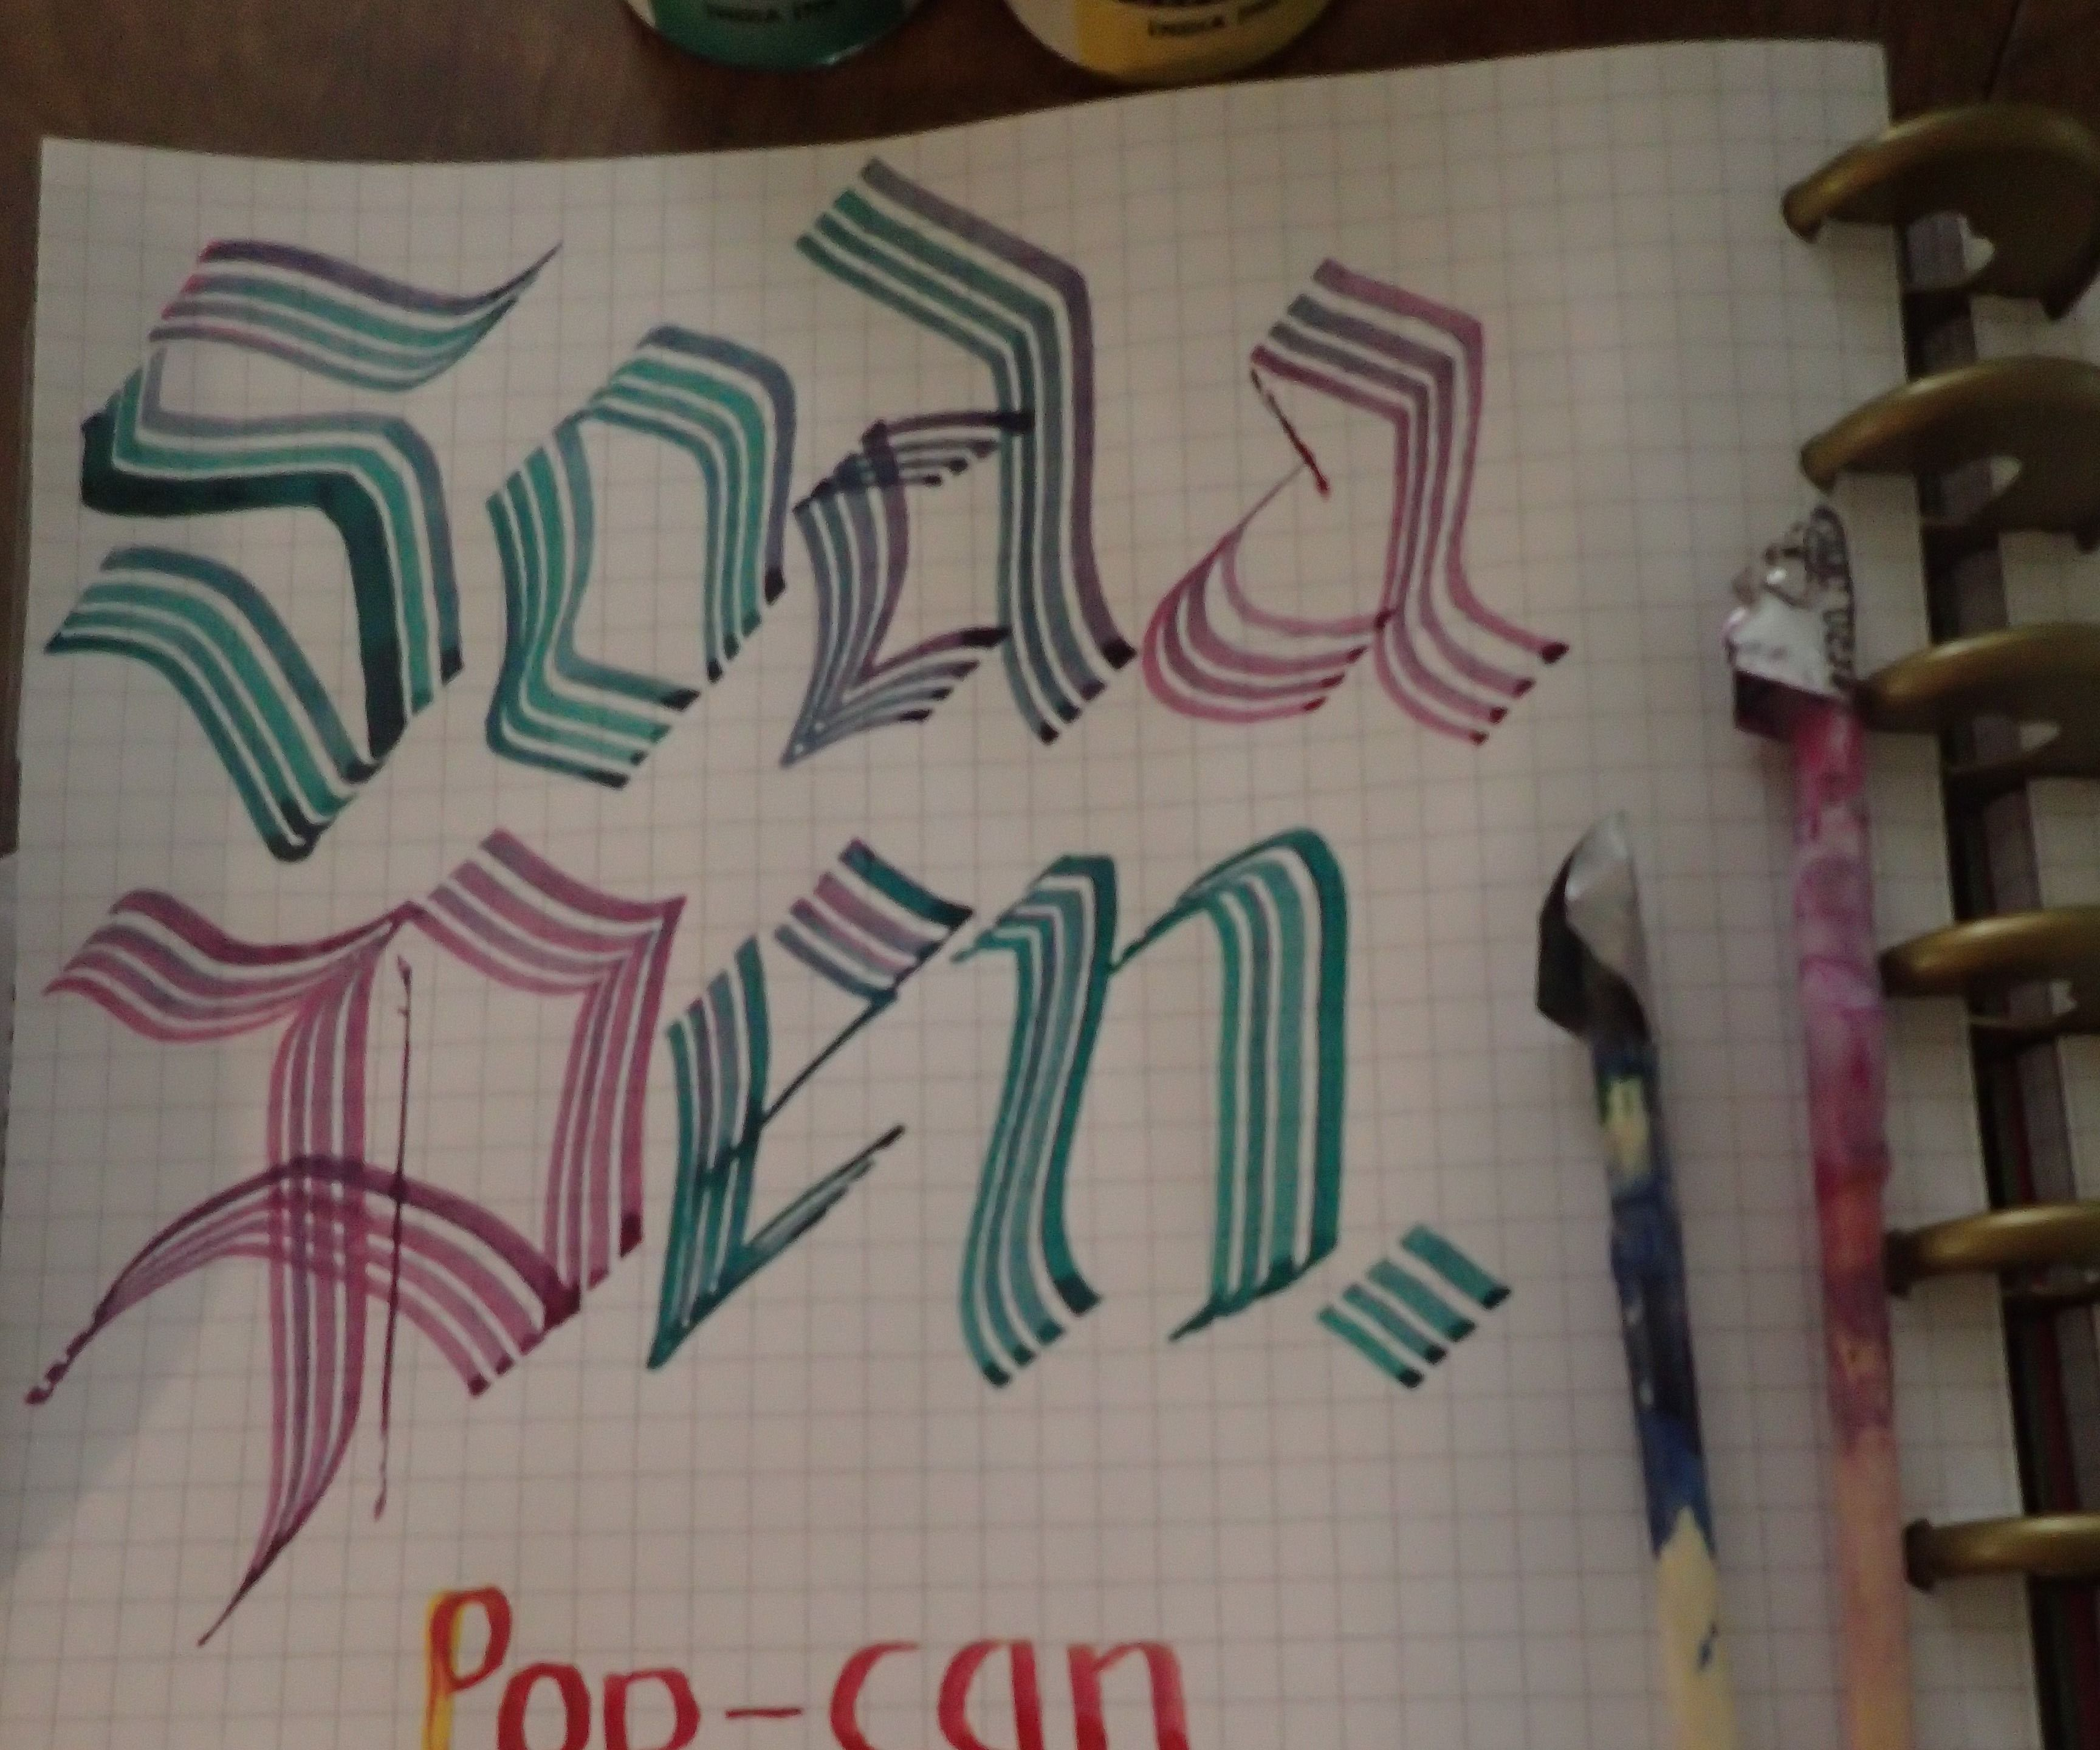 Pop-Can Calligraphy Pens